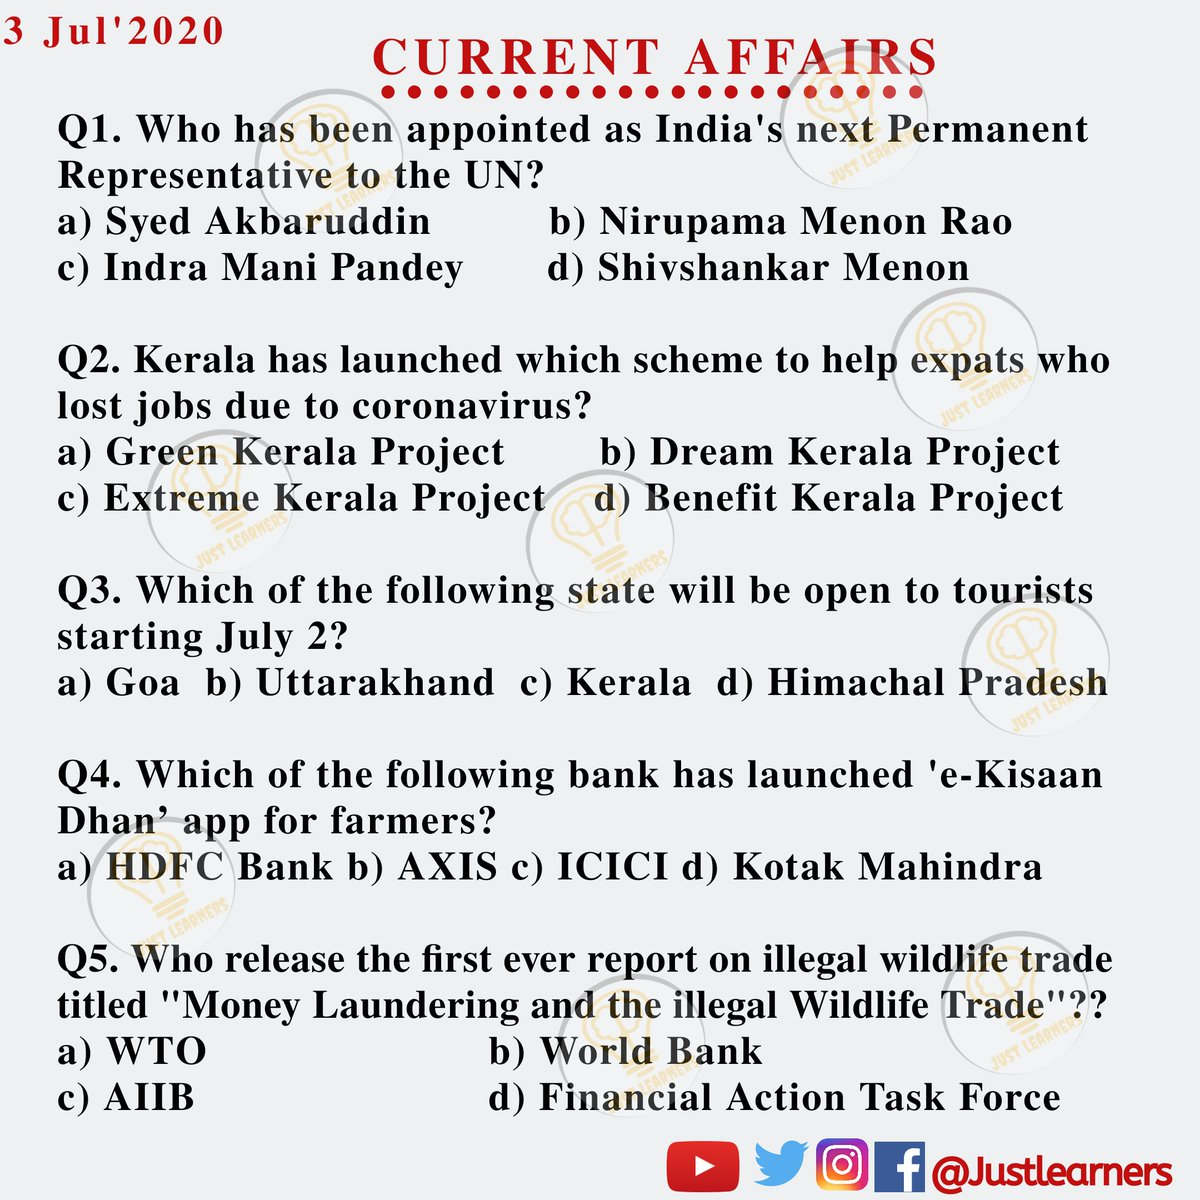 Keep updated yourself with daily Current Affairs Follow :- @JustLearners  Link in bio. #currentaffairs #indiagk #dailygk #currentaffairs24 #factsdaily #currentaffairs_gk #gkstudy #selfstudy #upscexam #gkforexam #upsc #rbi #DidYouKnow #currentaffairsbyjustlearners #justlearnerspic.twitter.com/t4nHNL3Zae